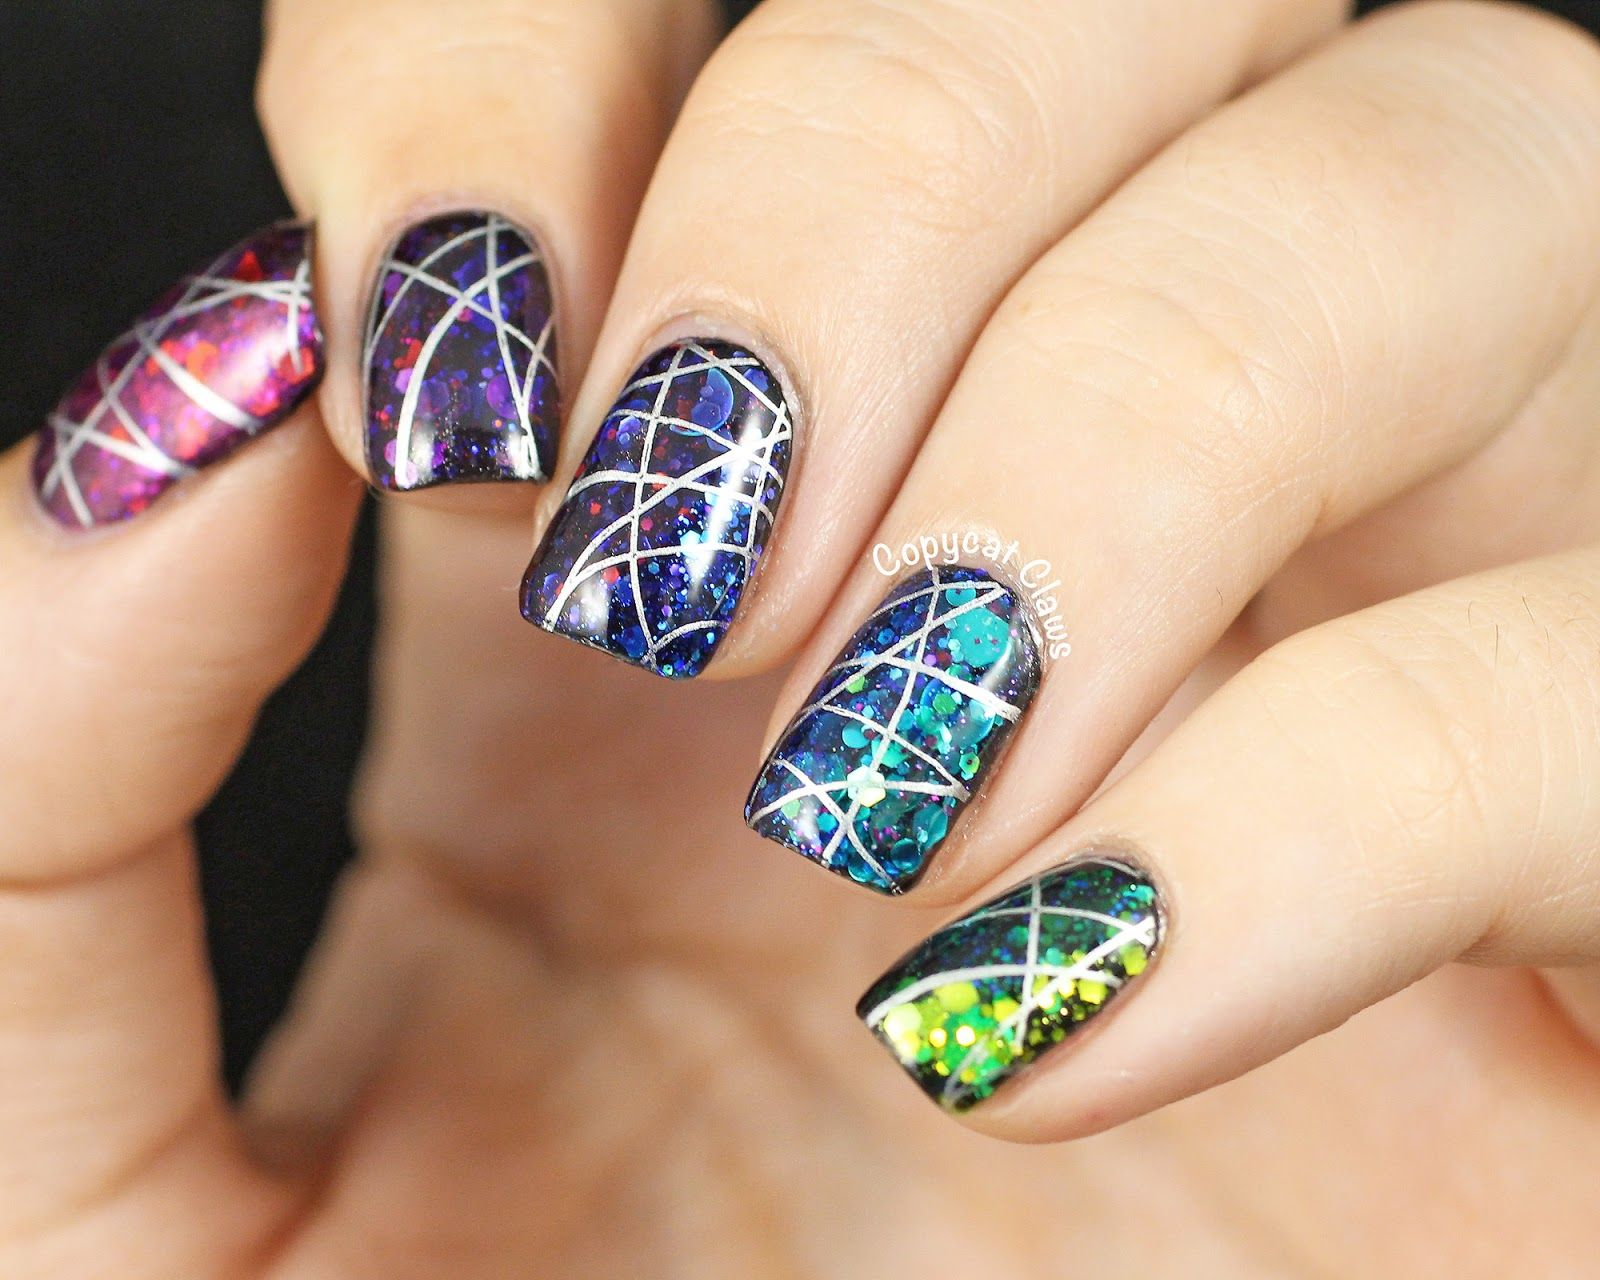 Love these nails but I wonder how they were done. Does anyone know ...